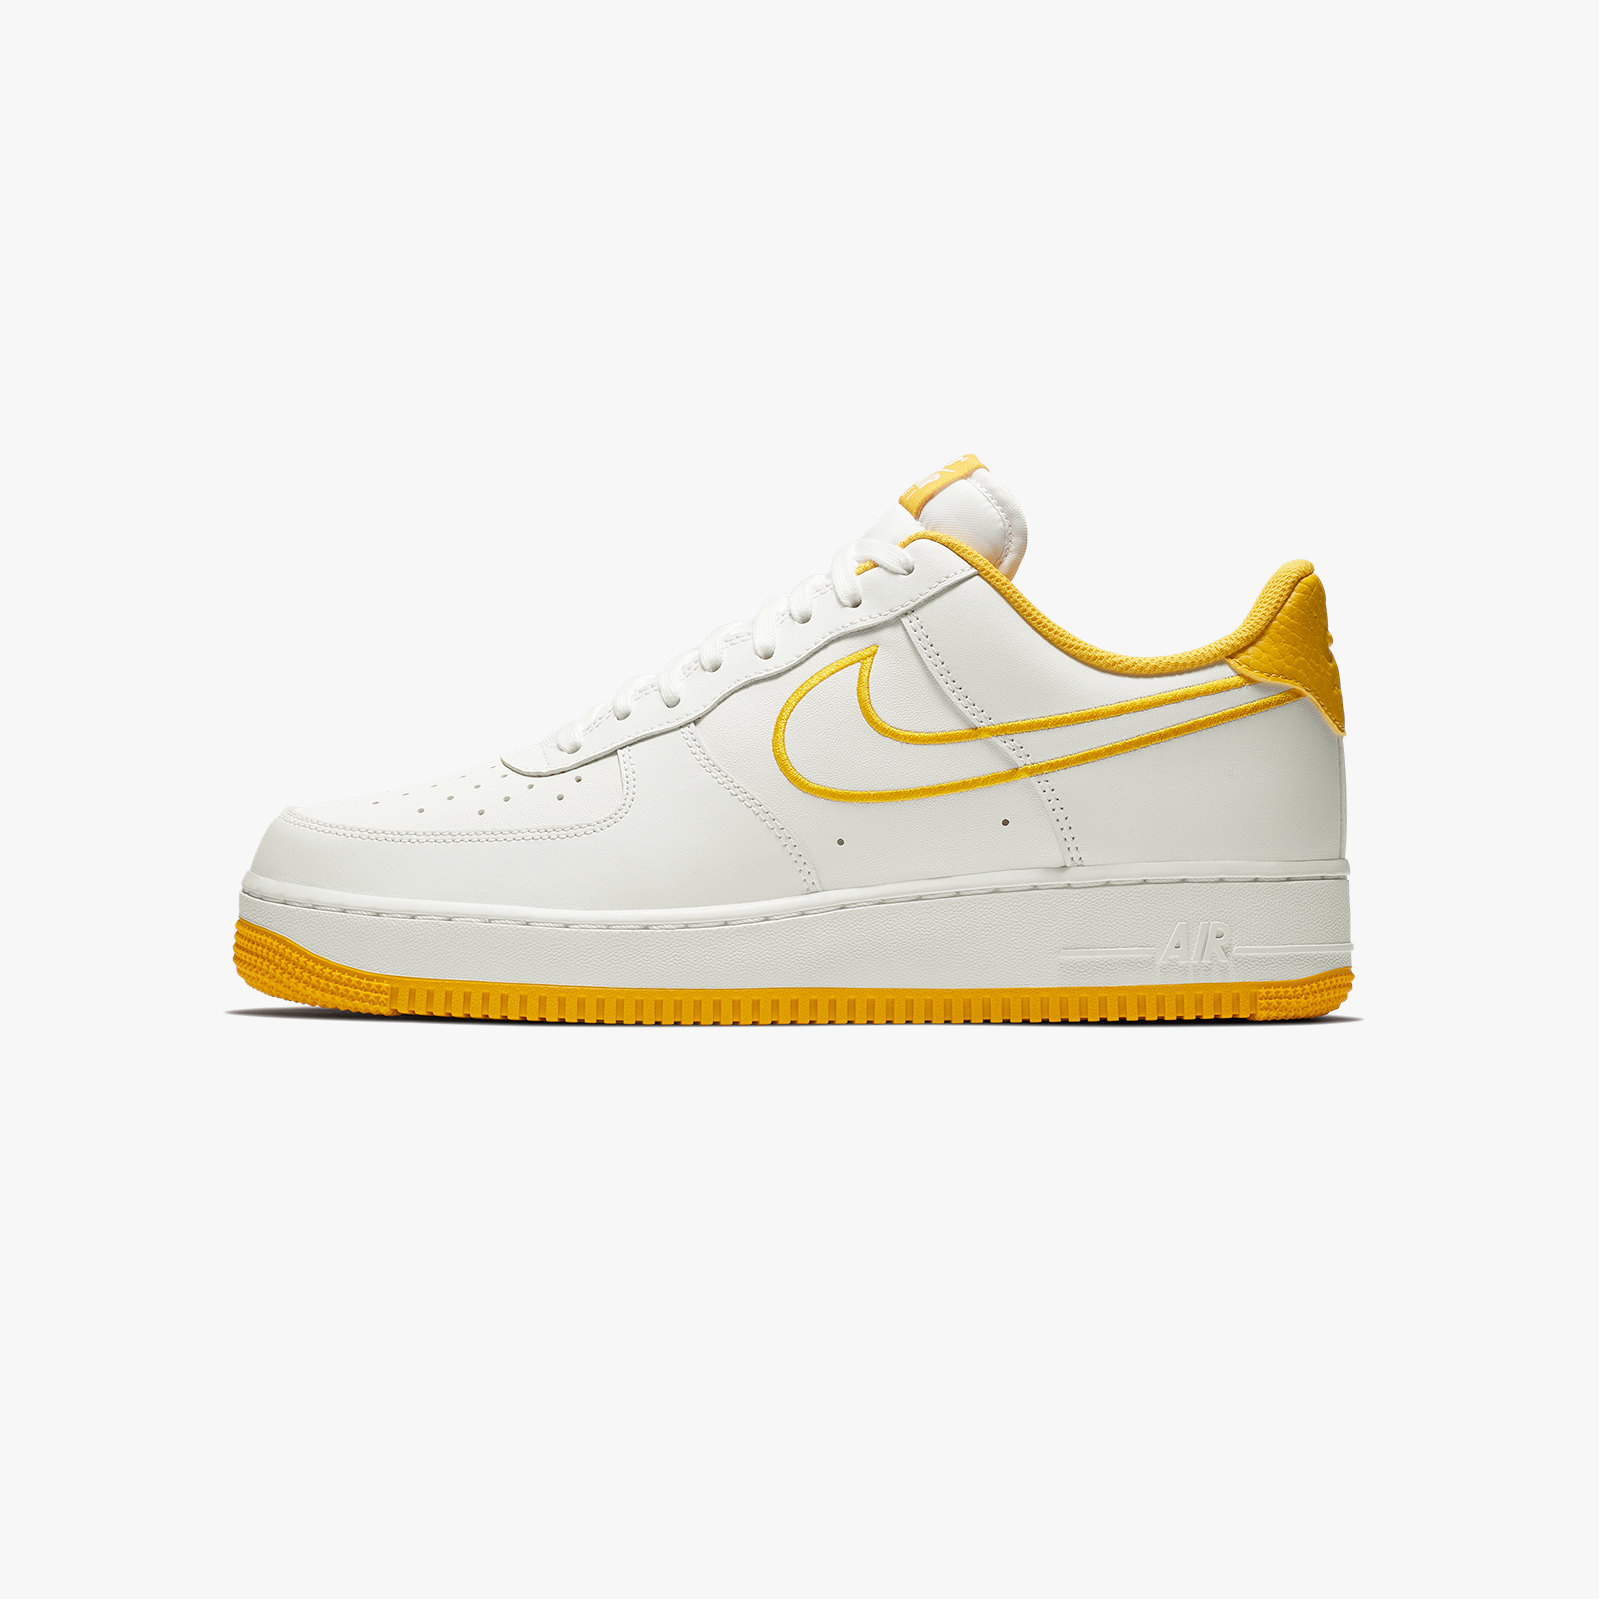 d357161447f8d Nike Air Force 1 07 Leather - Aj7280-101 - Sneakersnstuff | sneakers ...